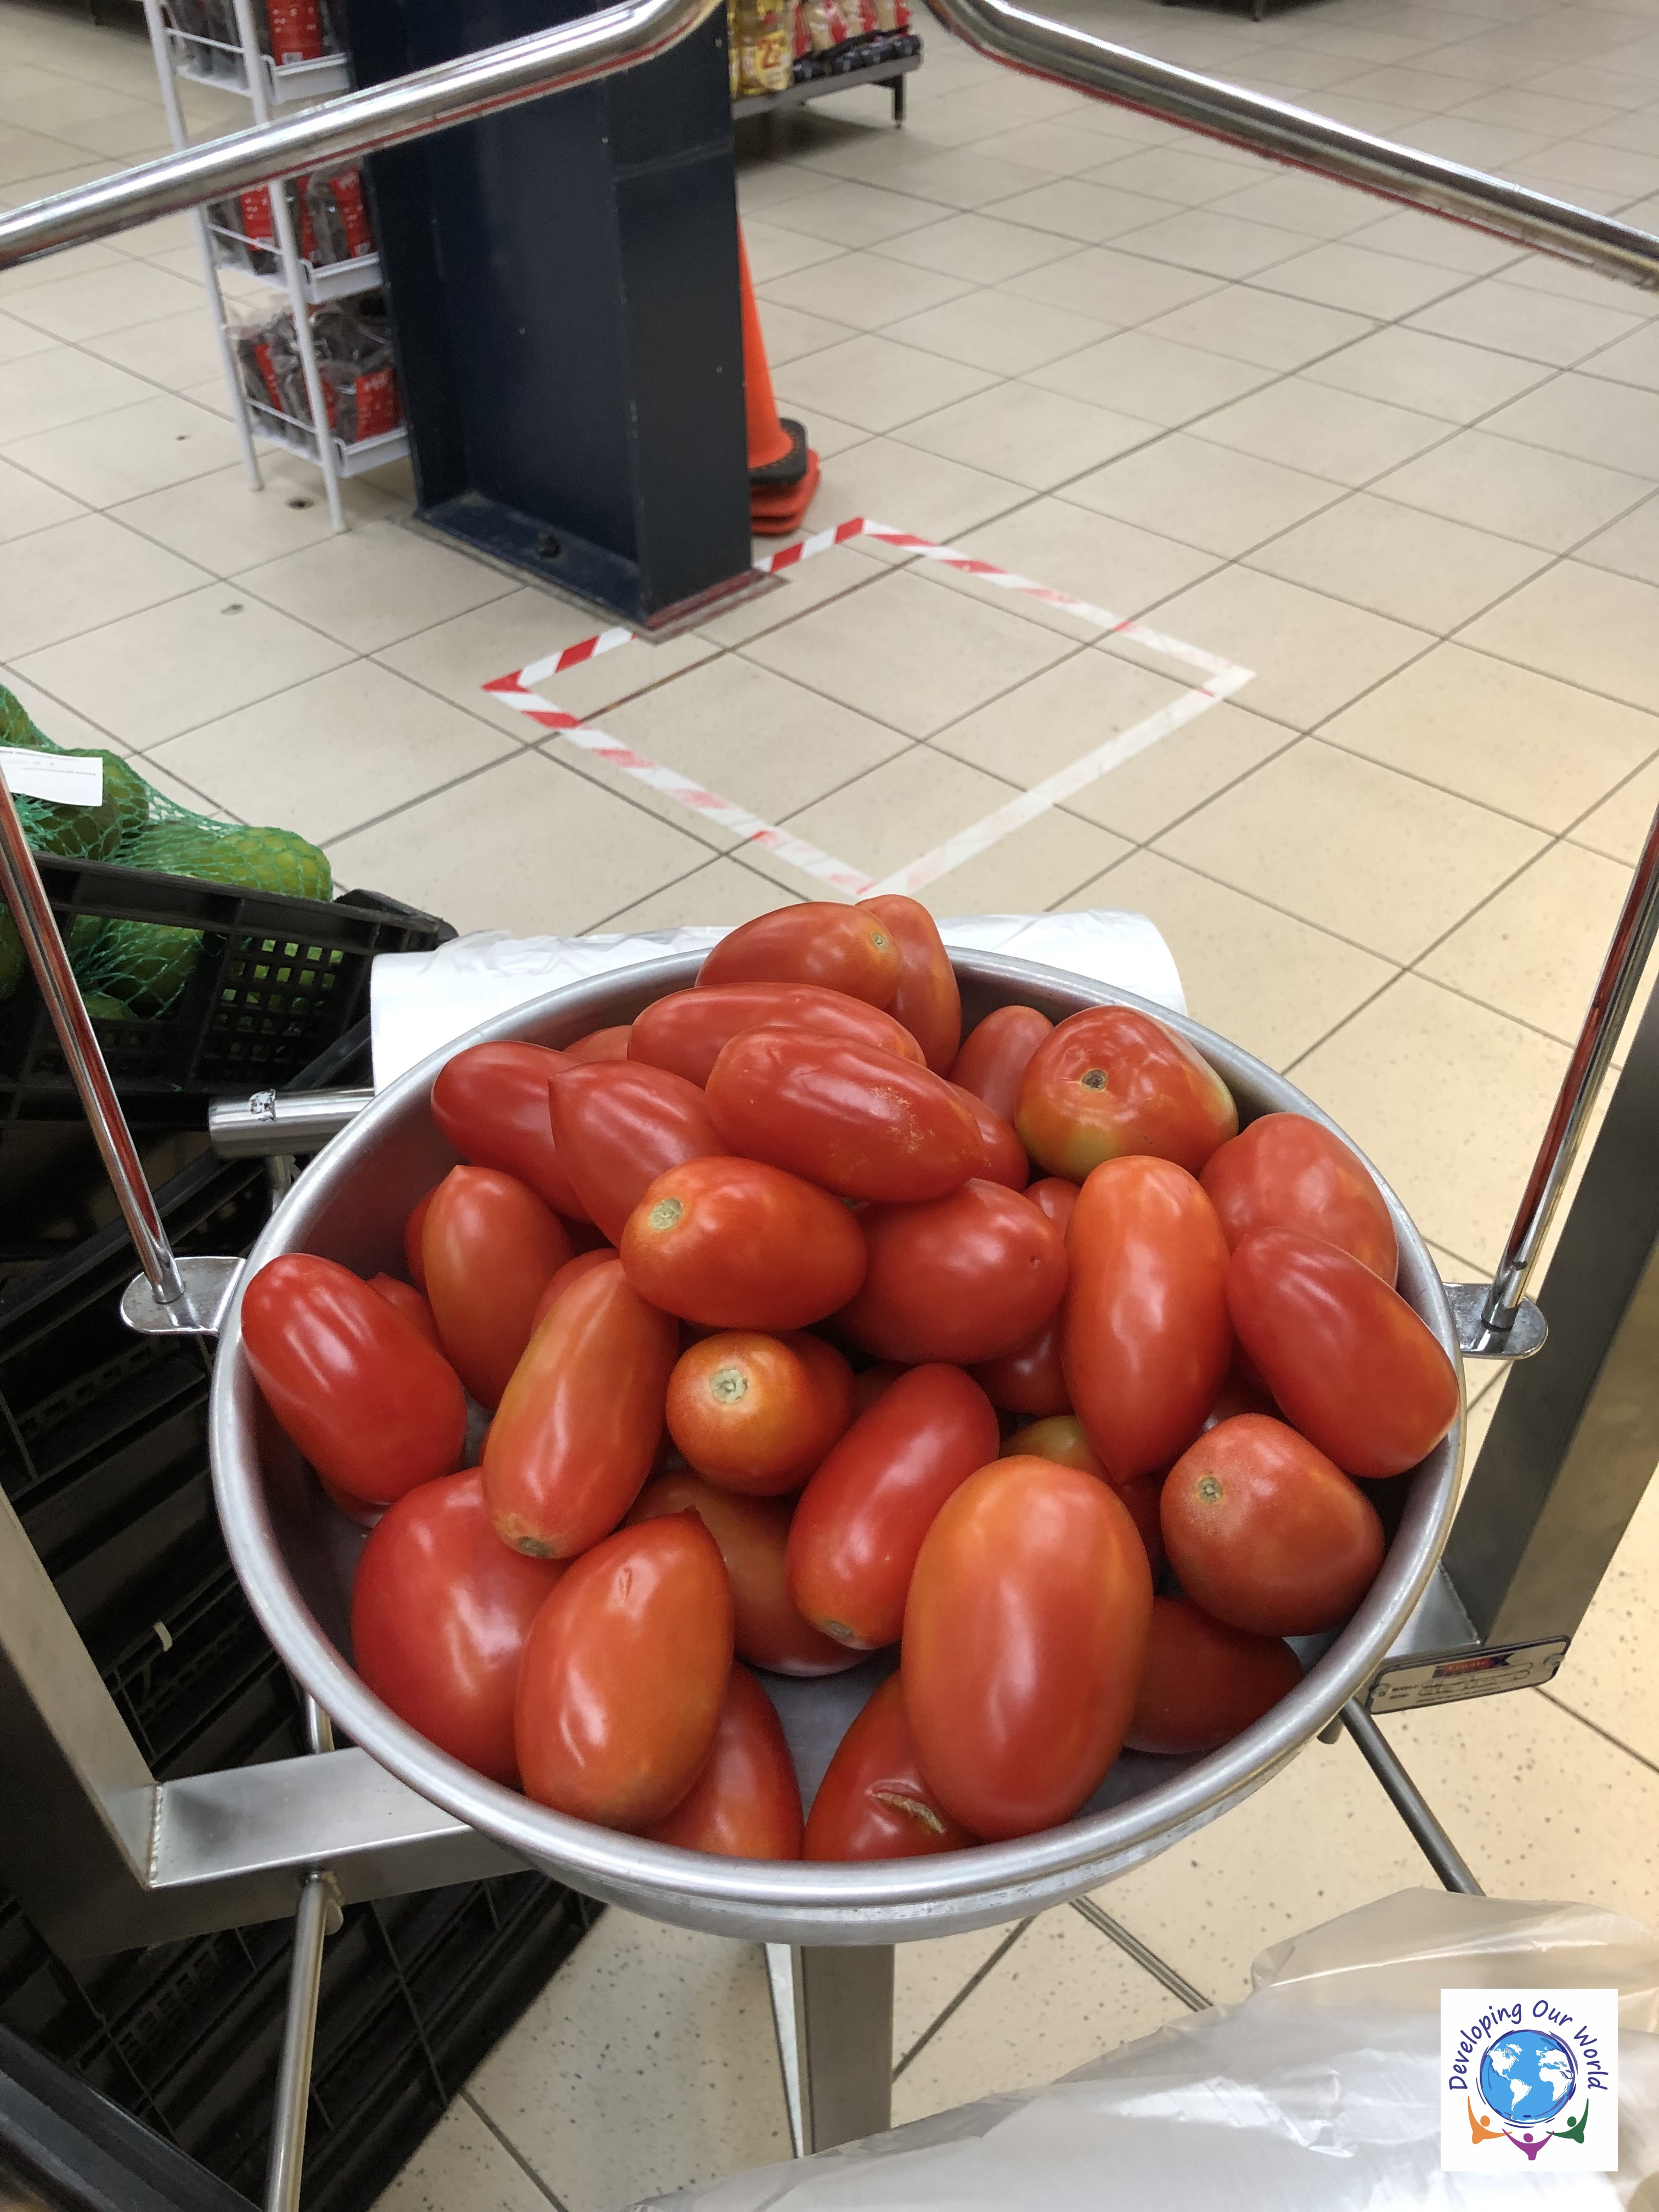 7 lbs of tomatoes